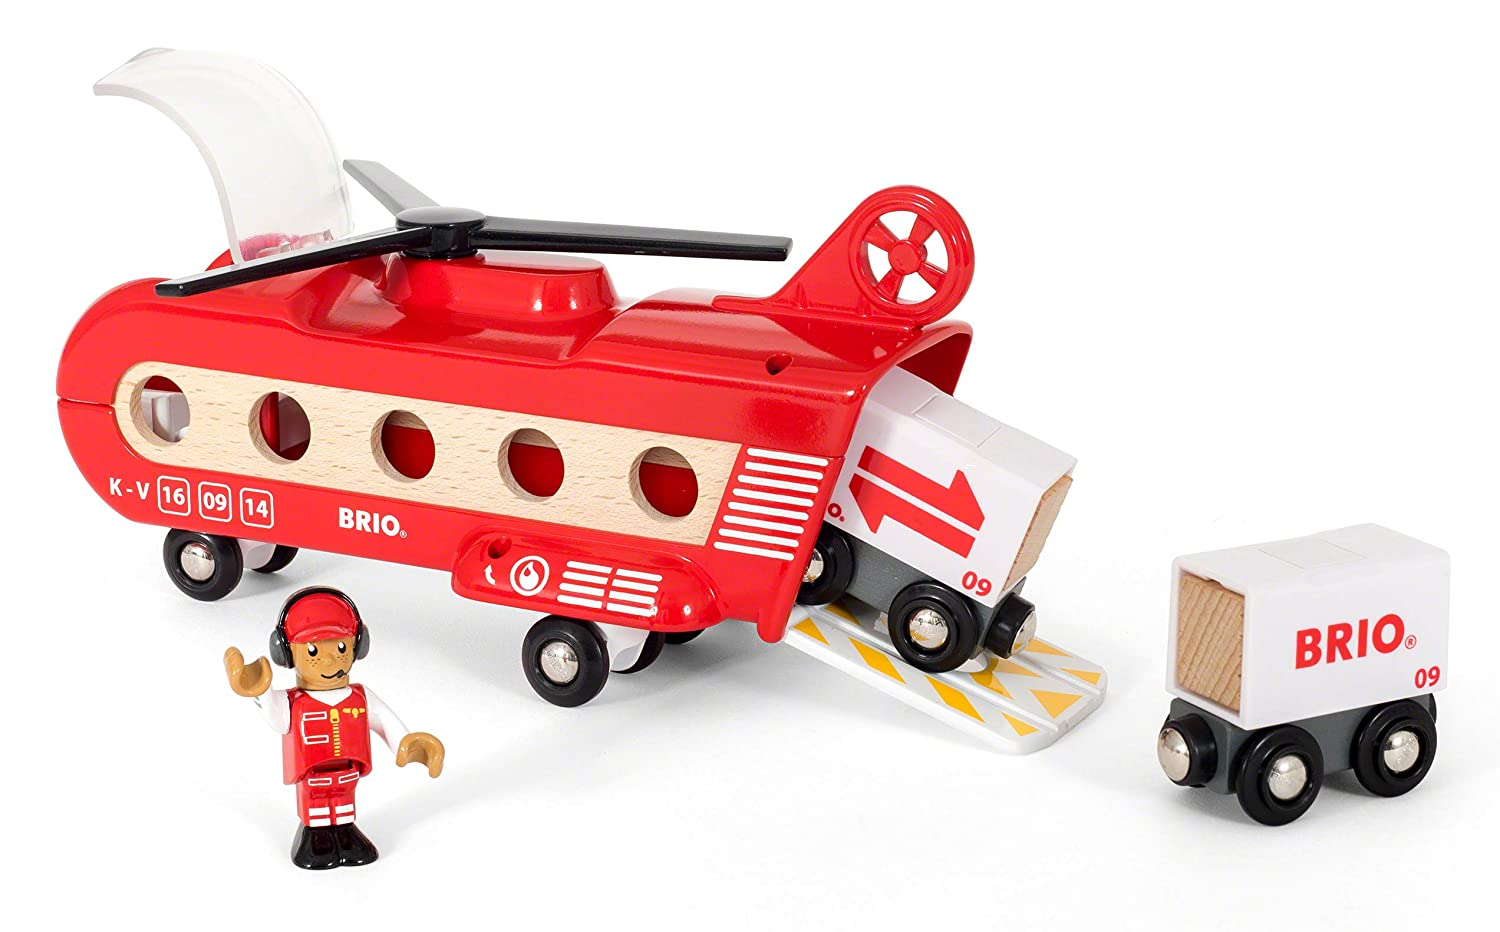 Cargo Helicopter Vehicle Toy Wooden Train Toy Brio World 33886